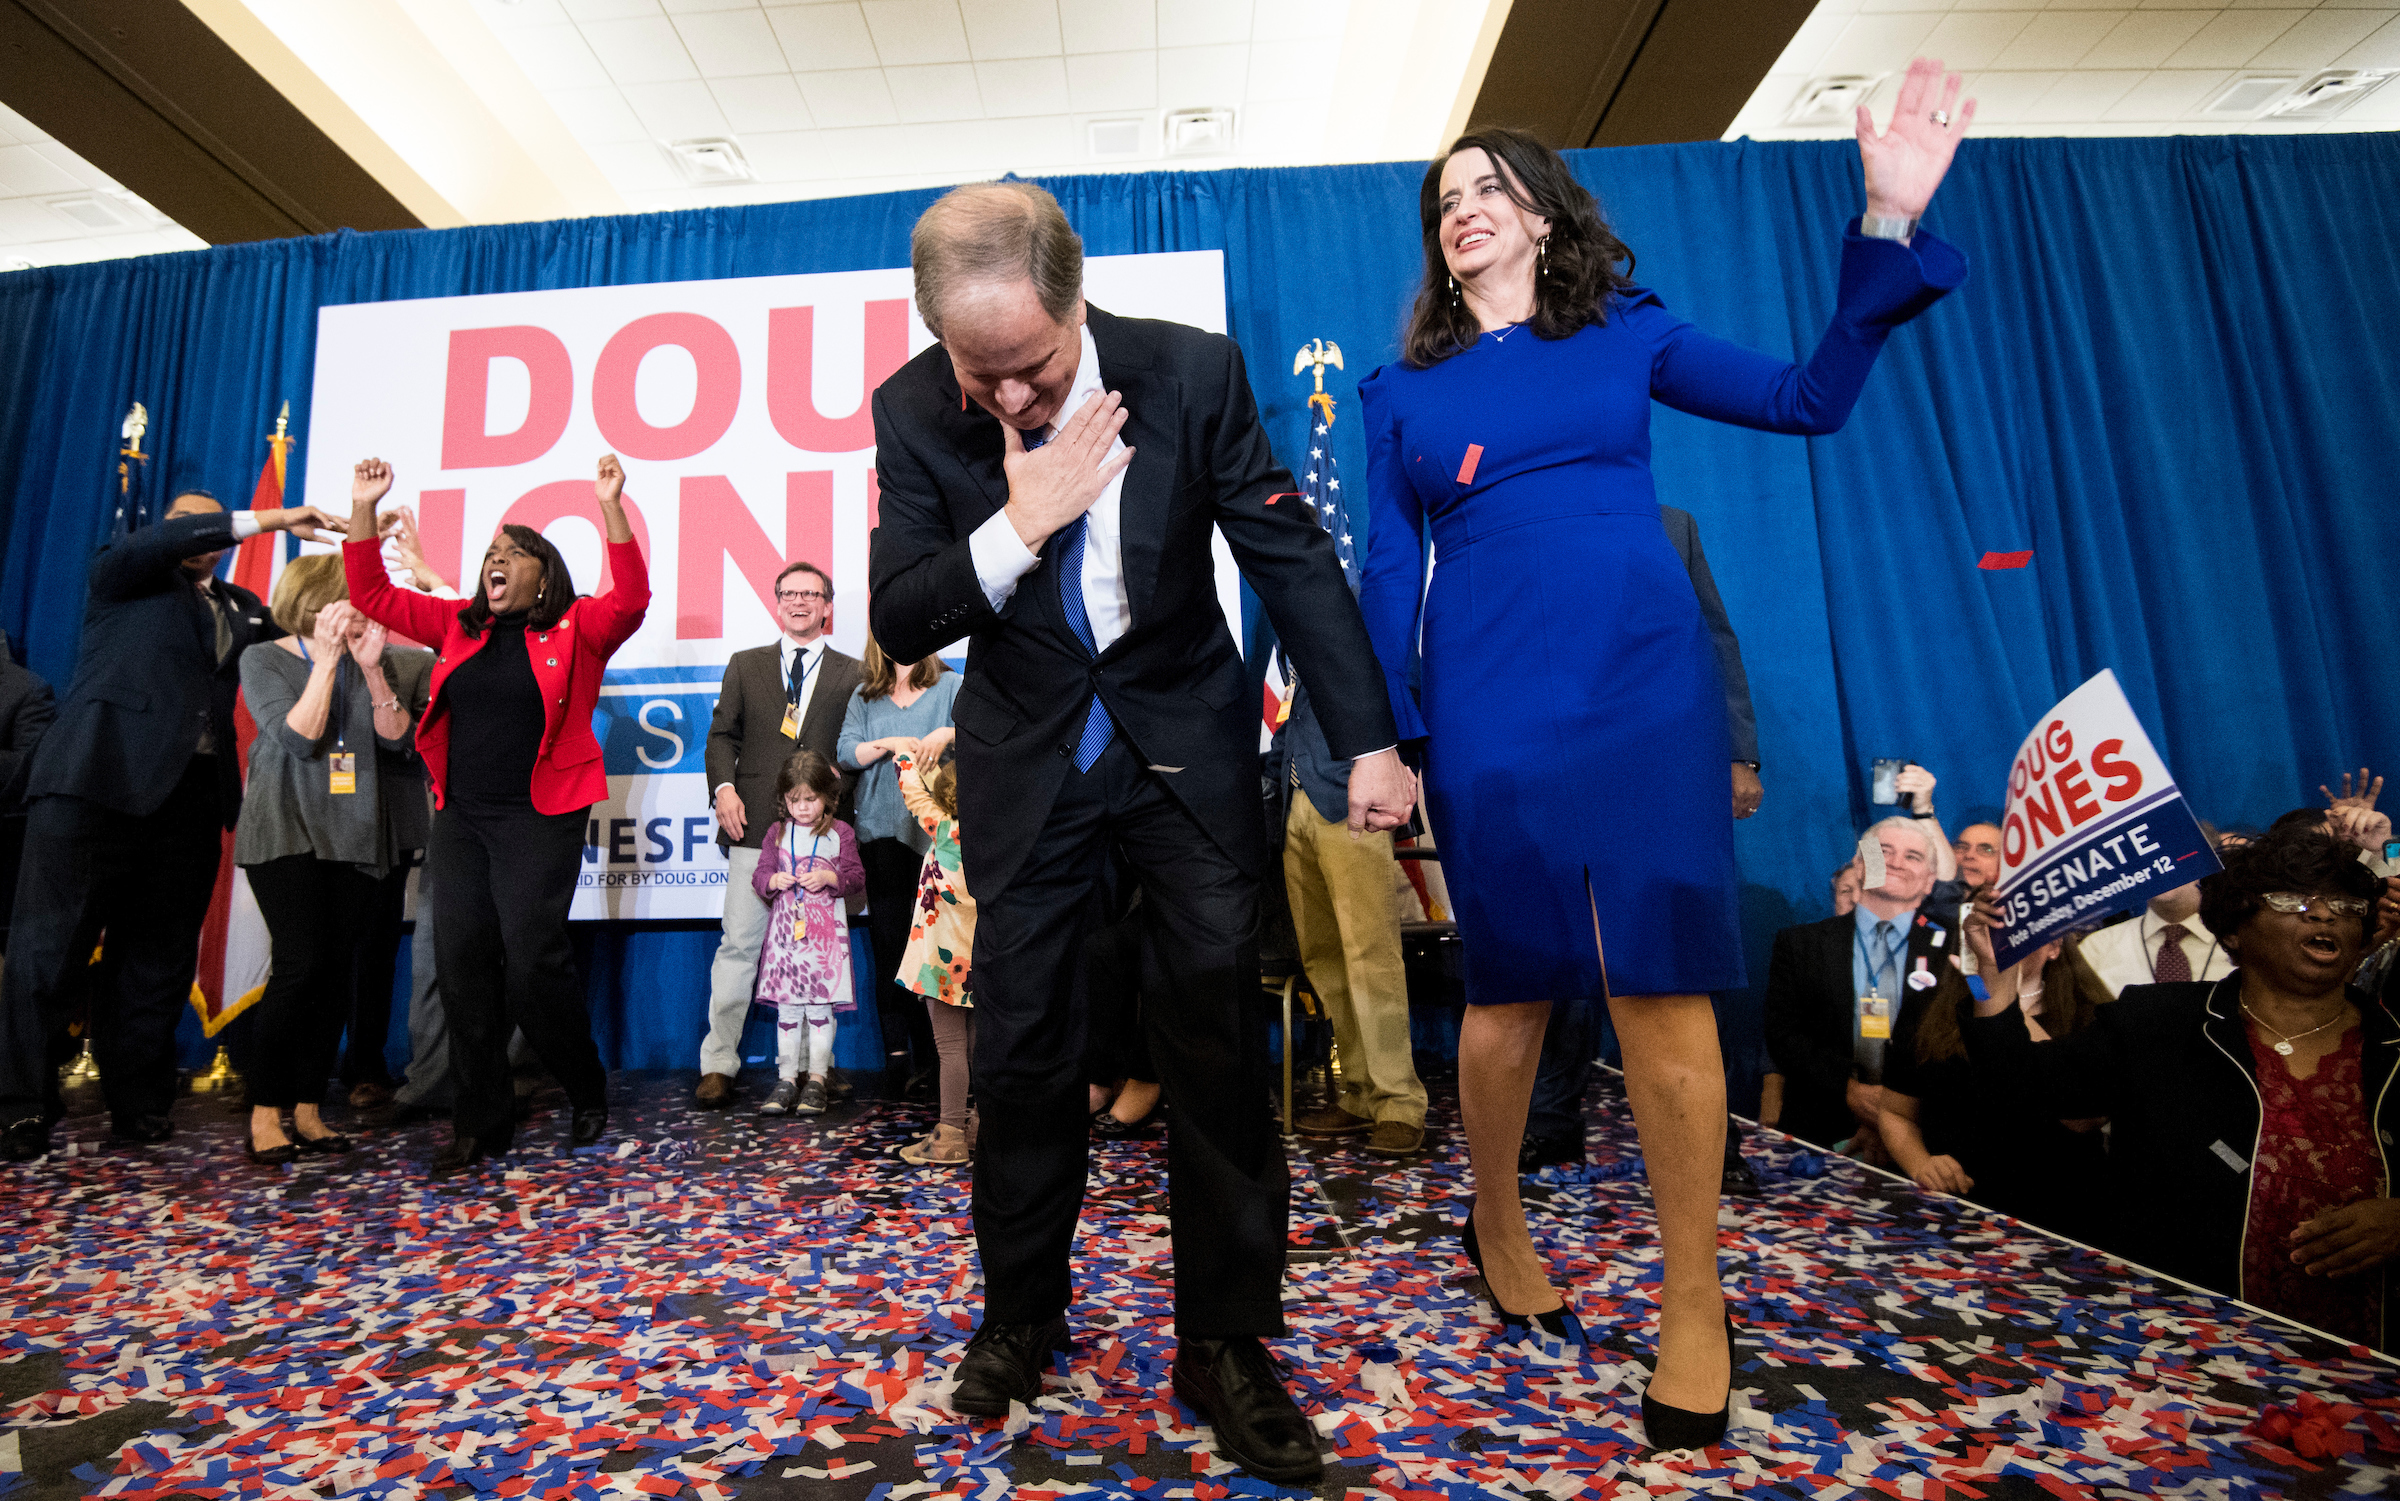 December 12: Alabama Democrat Doug Jones and his wife celebrate his victory over Judge Roy Moore at the Sheraton in Birmingham, Ala., on Tuesday, Dec. 12, 2017. Jones is faced off against Judge Roy Moore in a special election for Jeff Sessions' seat in the U.S. Senate. (Bill Clark/CQ Roll Call)